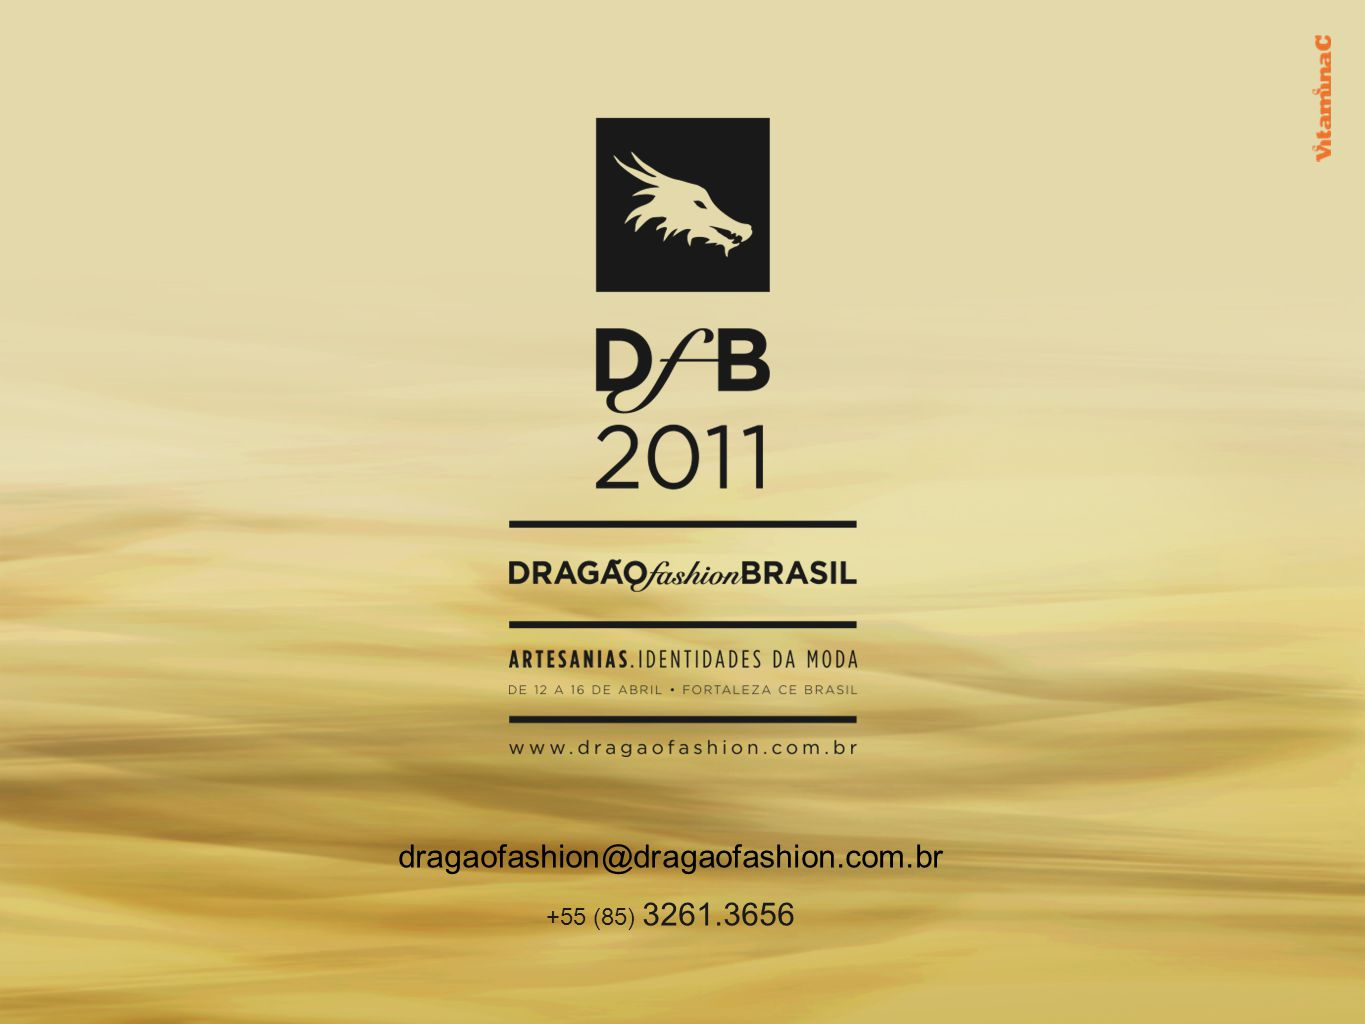 dragaofashion@dragaofashion.com.br +55 (85) 3261.3656